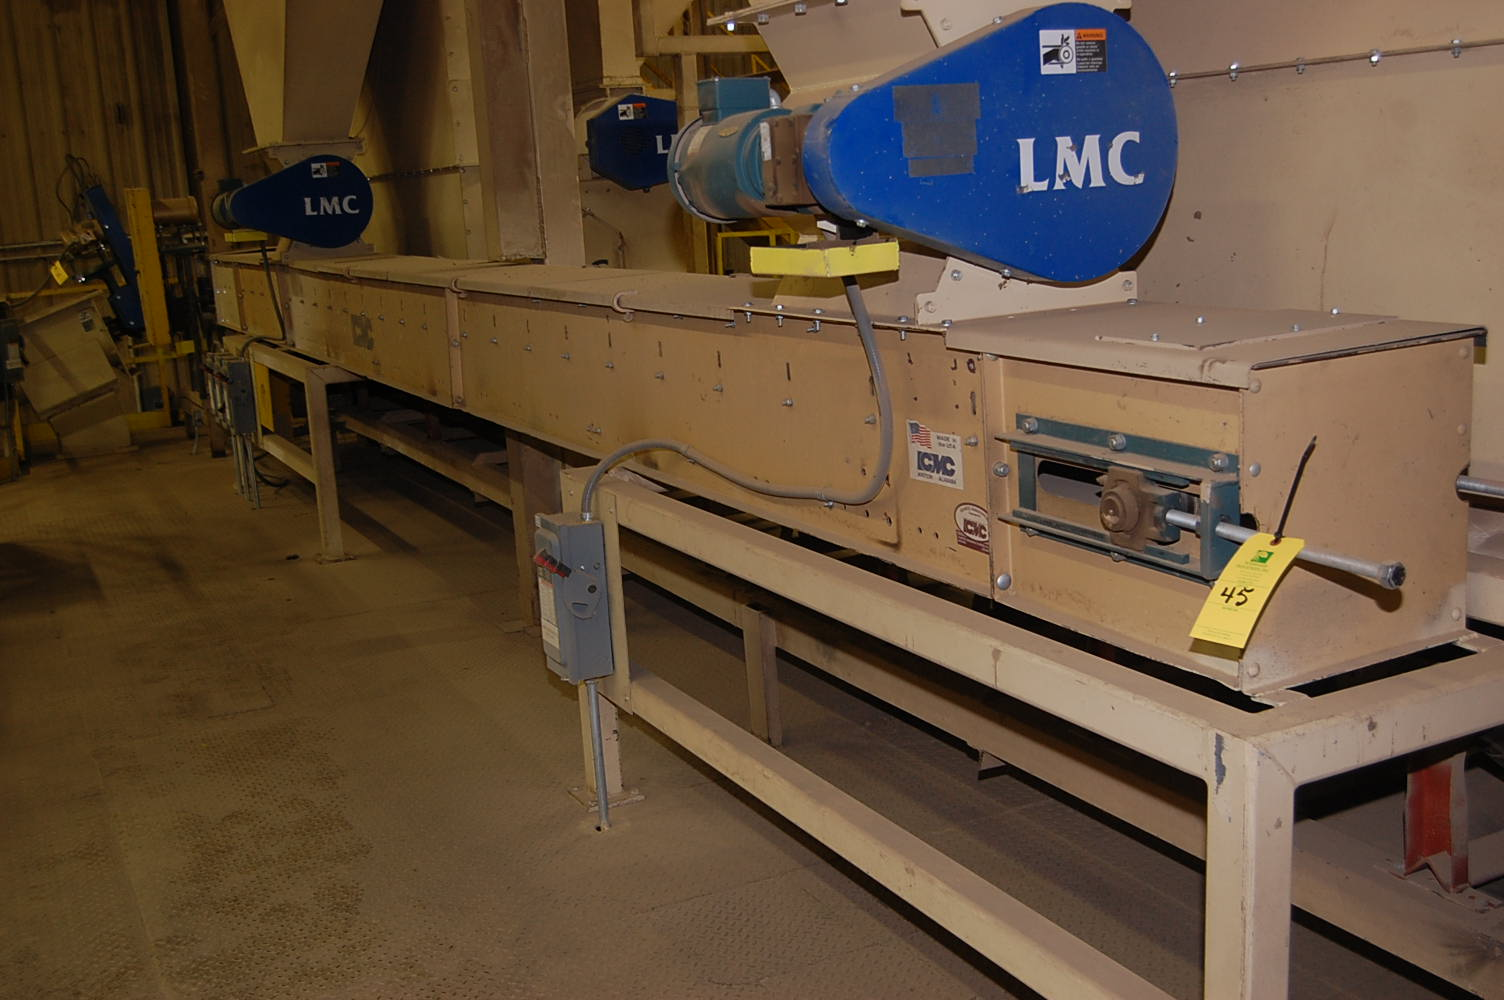 Lmc motorized belt conveyor 25 ft length 230 460 volt Motorized conveyor belt